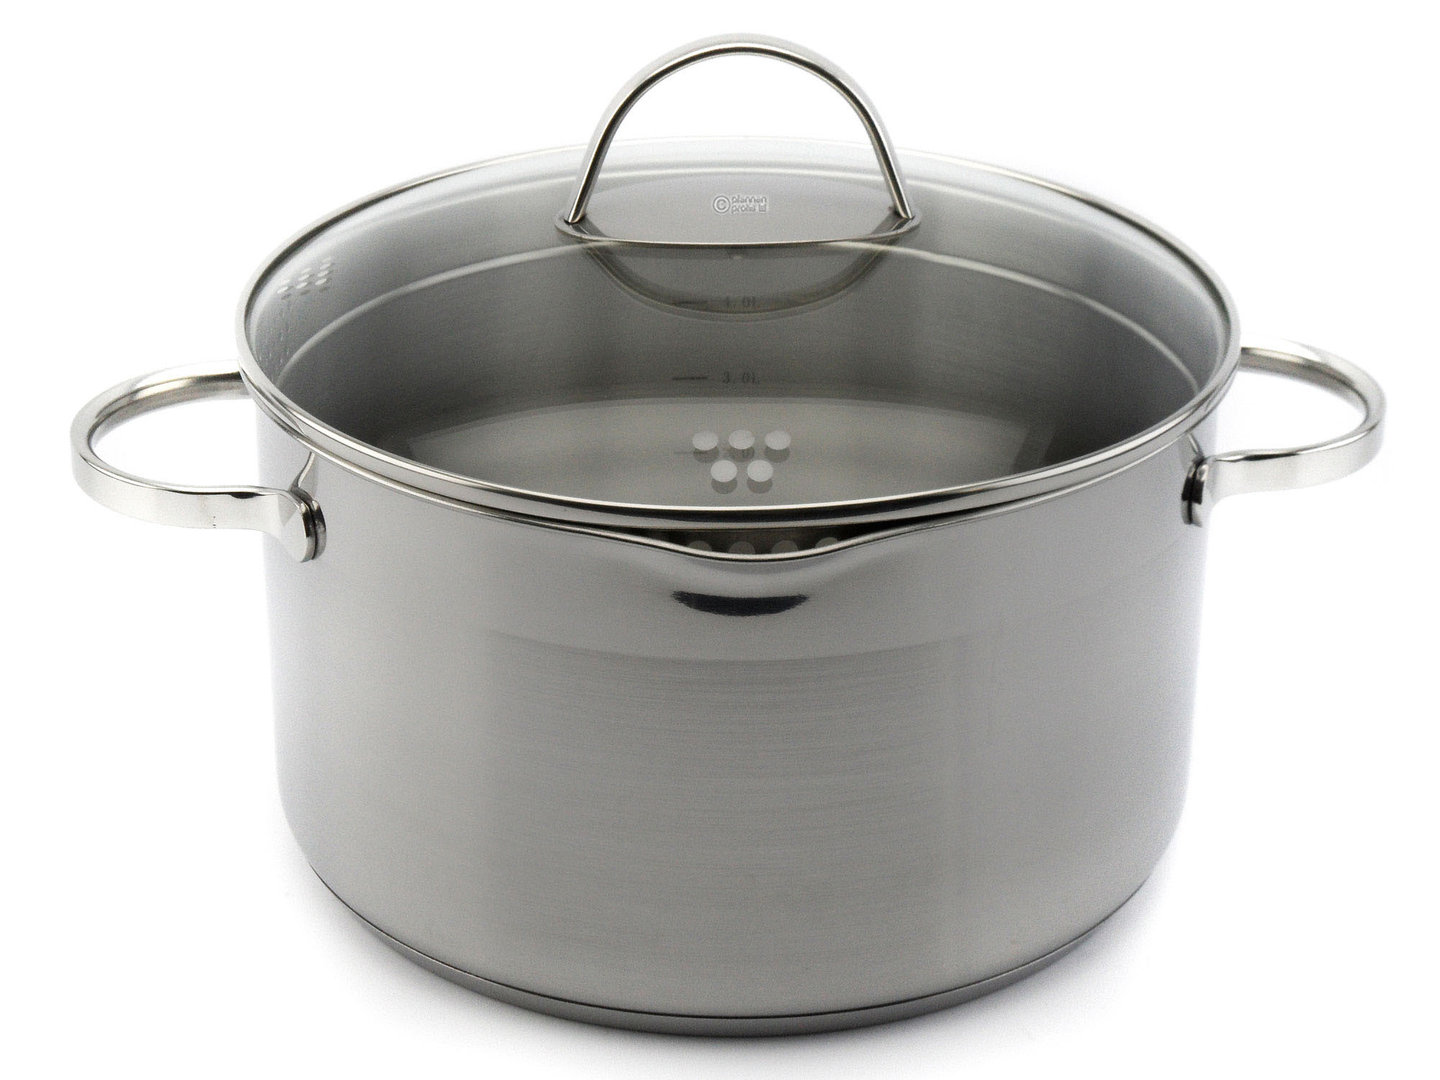 SSW easy straining casserole COMFORT 24 cm 6.1 L stainless steel induction